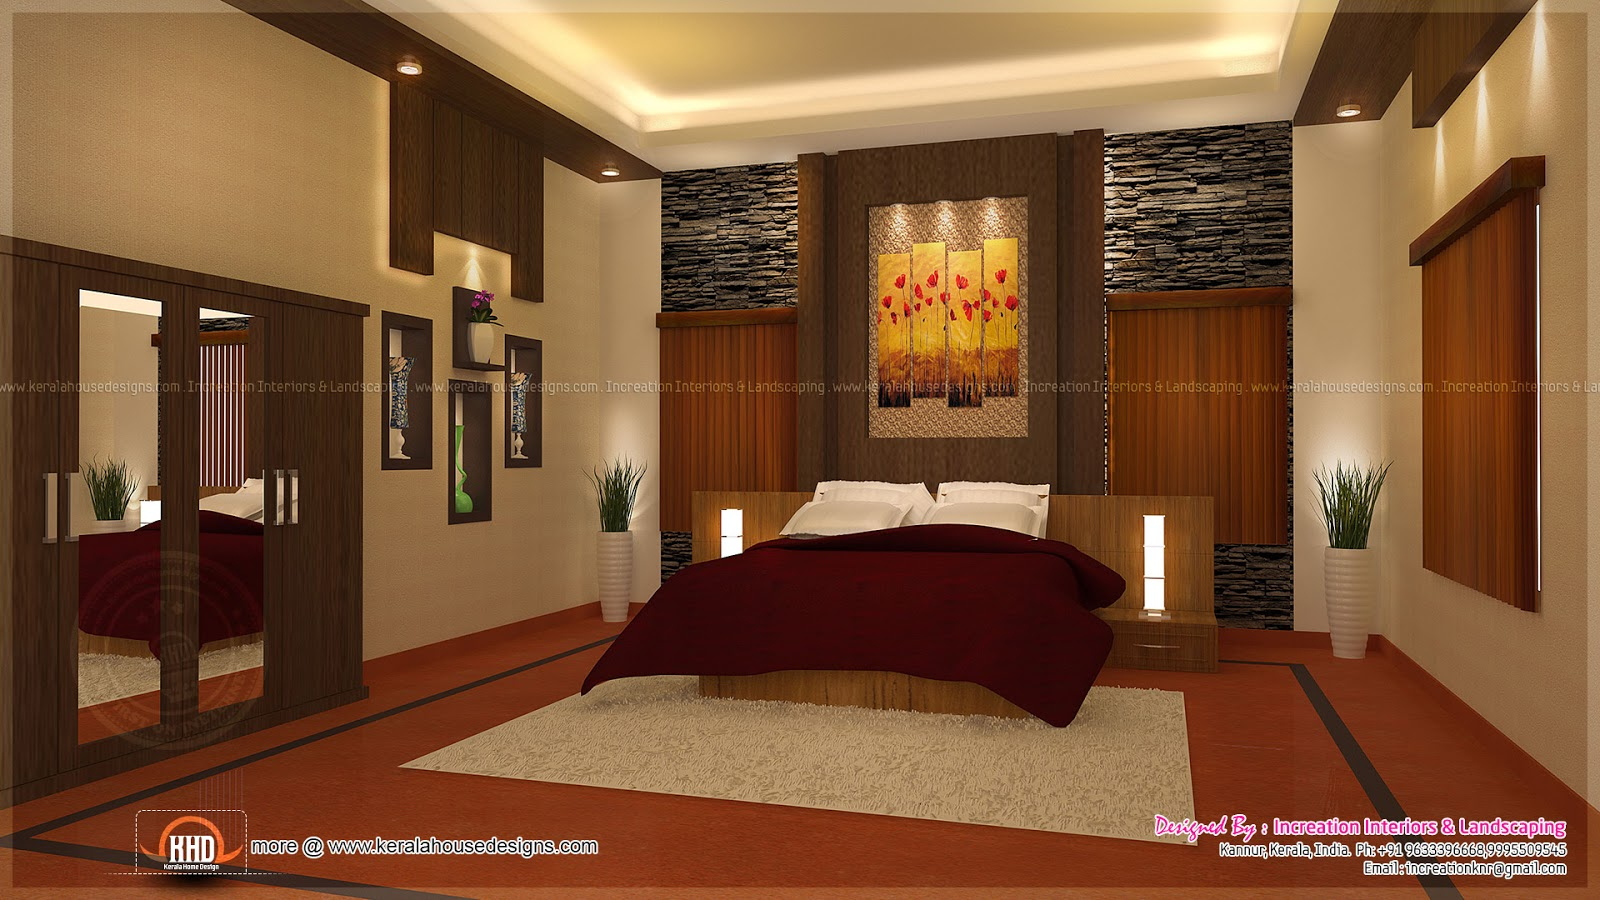 Master bedroom interior - Housing interiors ...